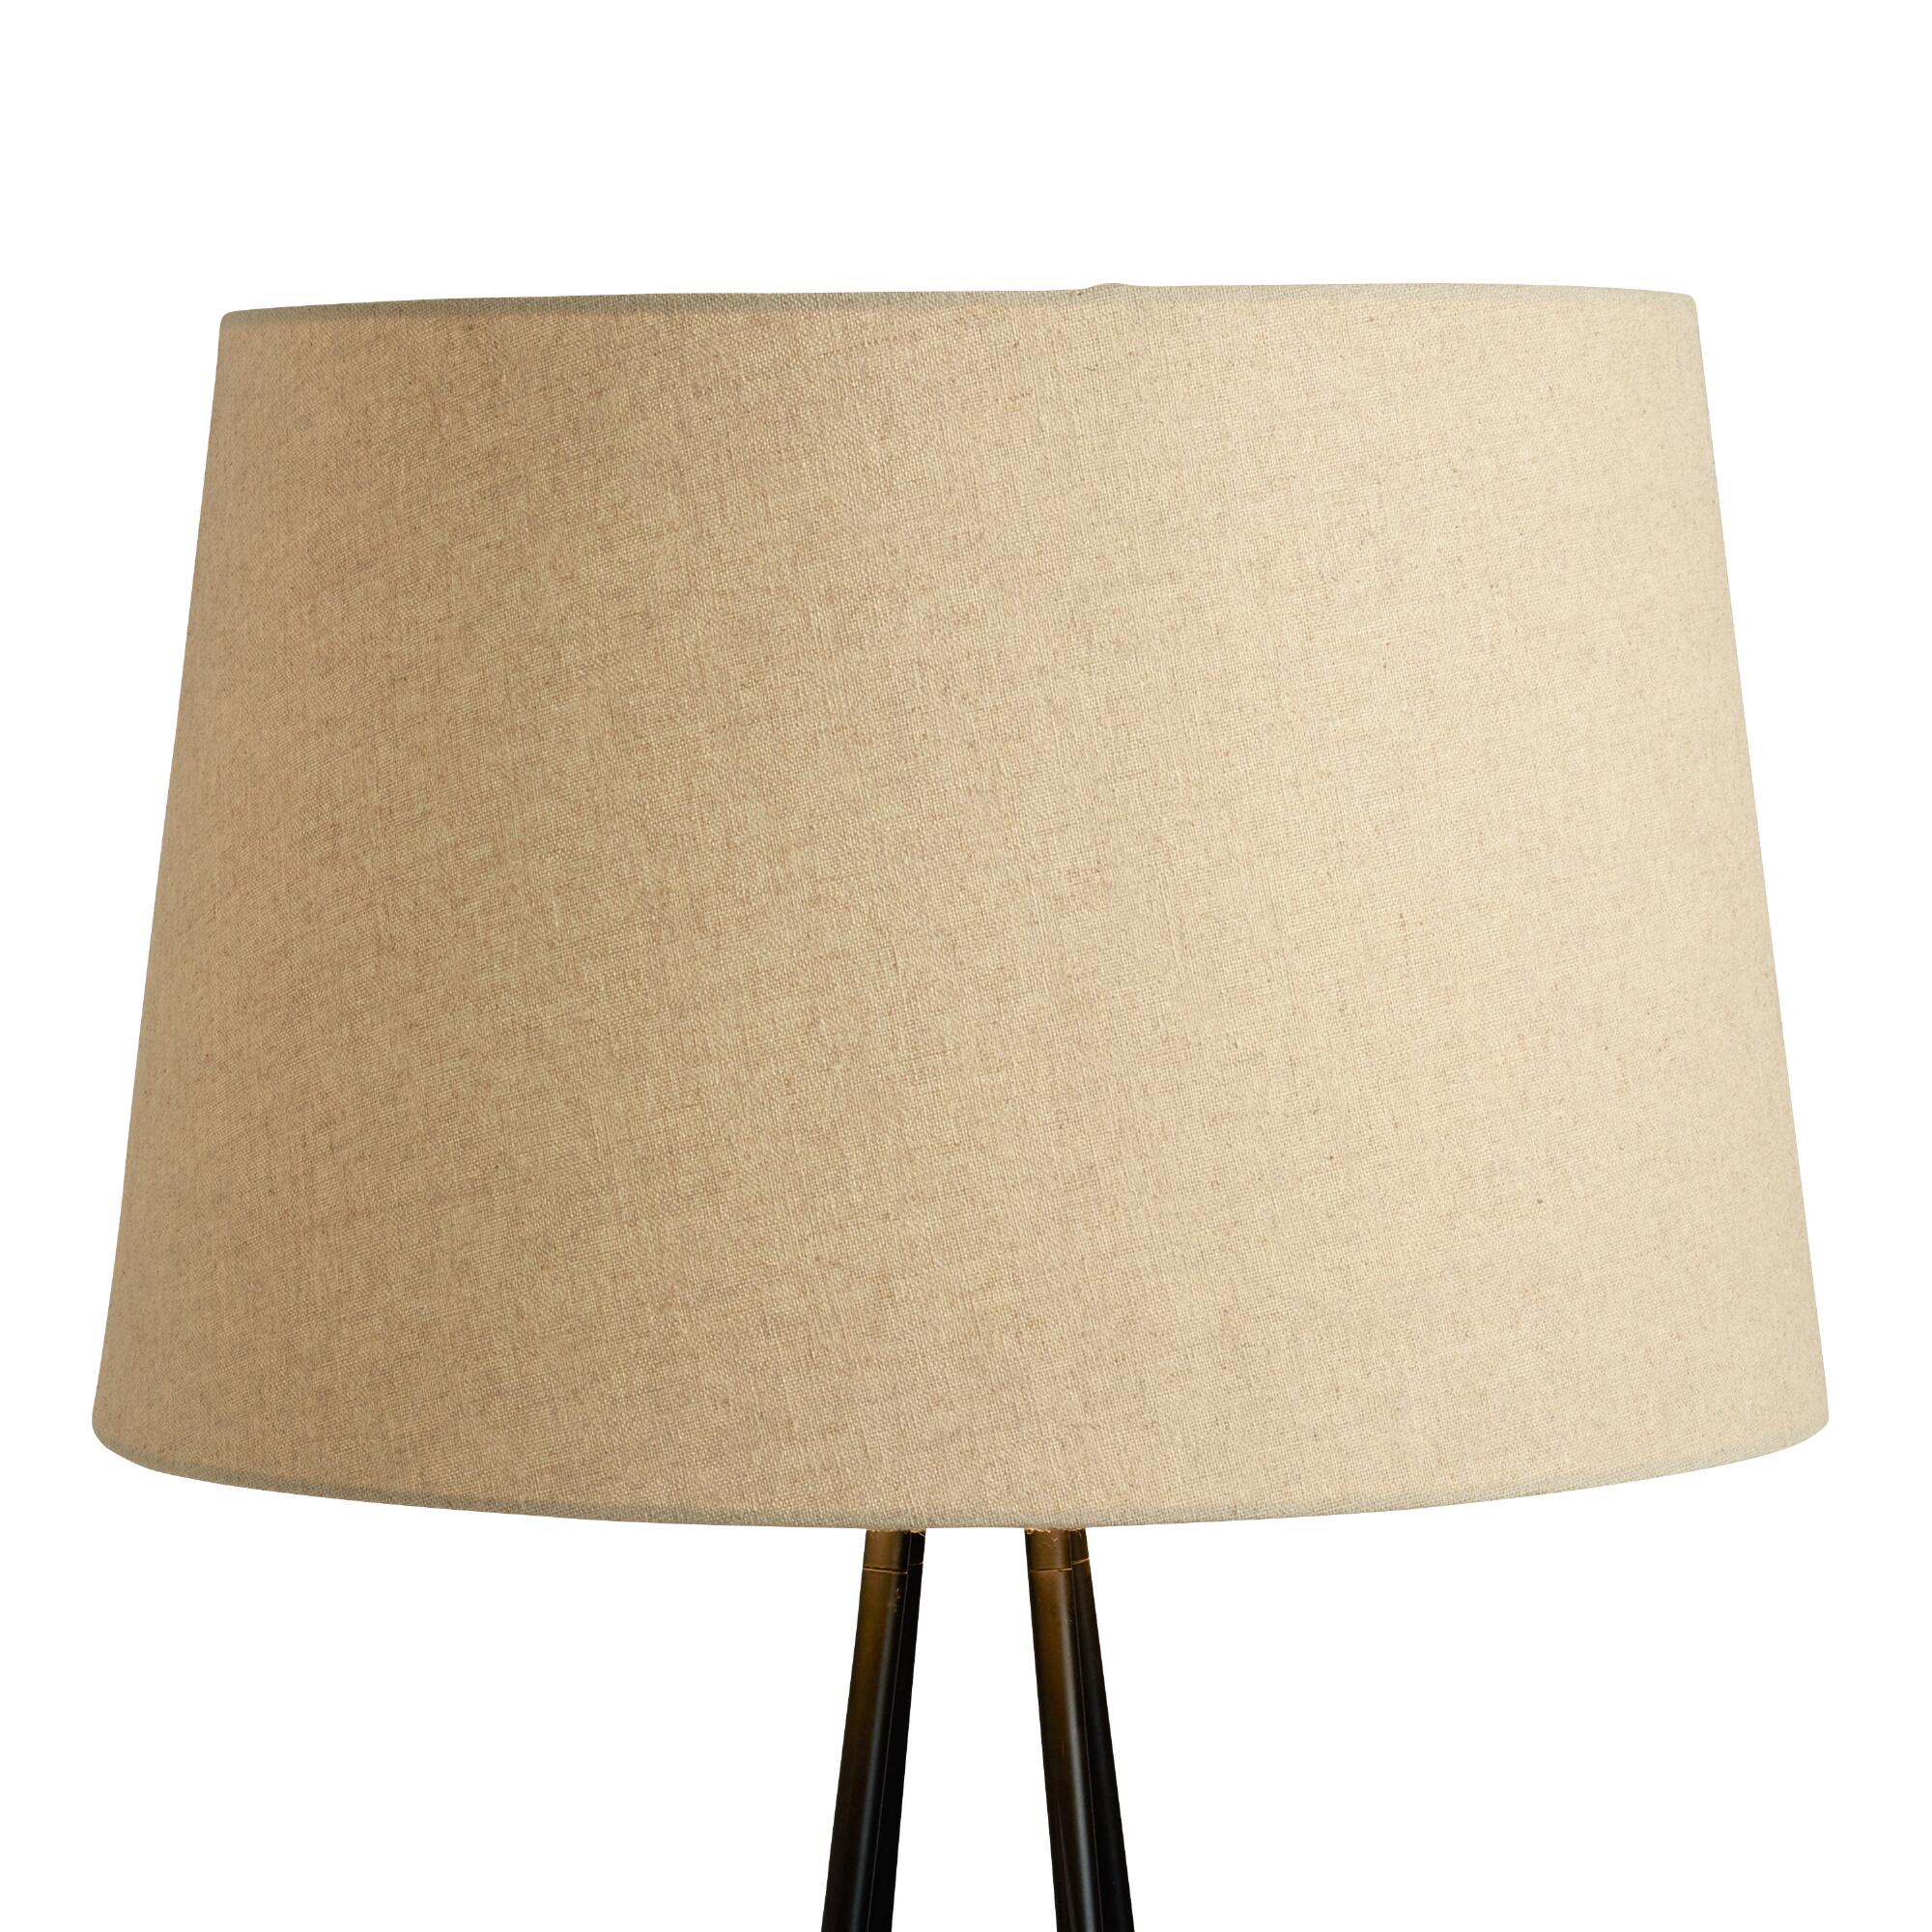 Linen Floor Lamp Shade: Natural - Fabric by World Market